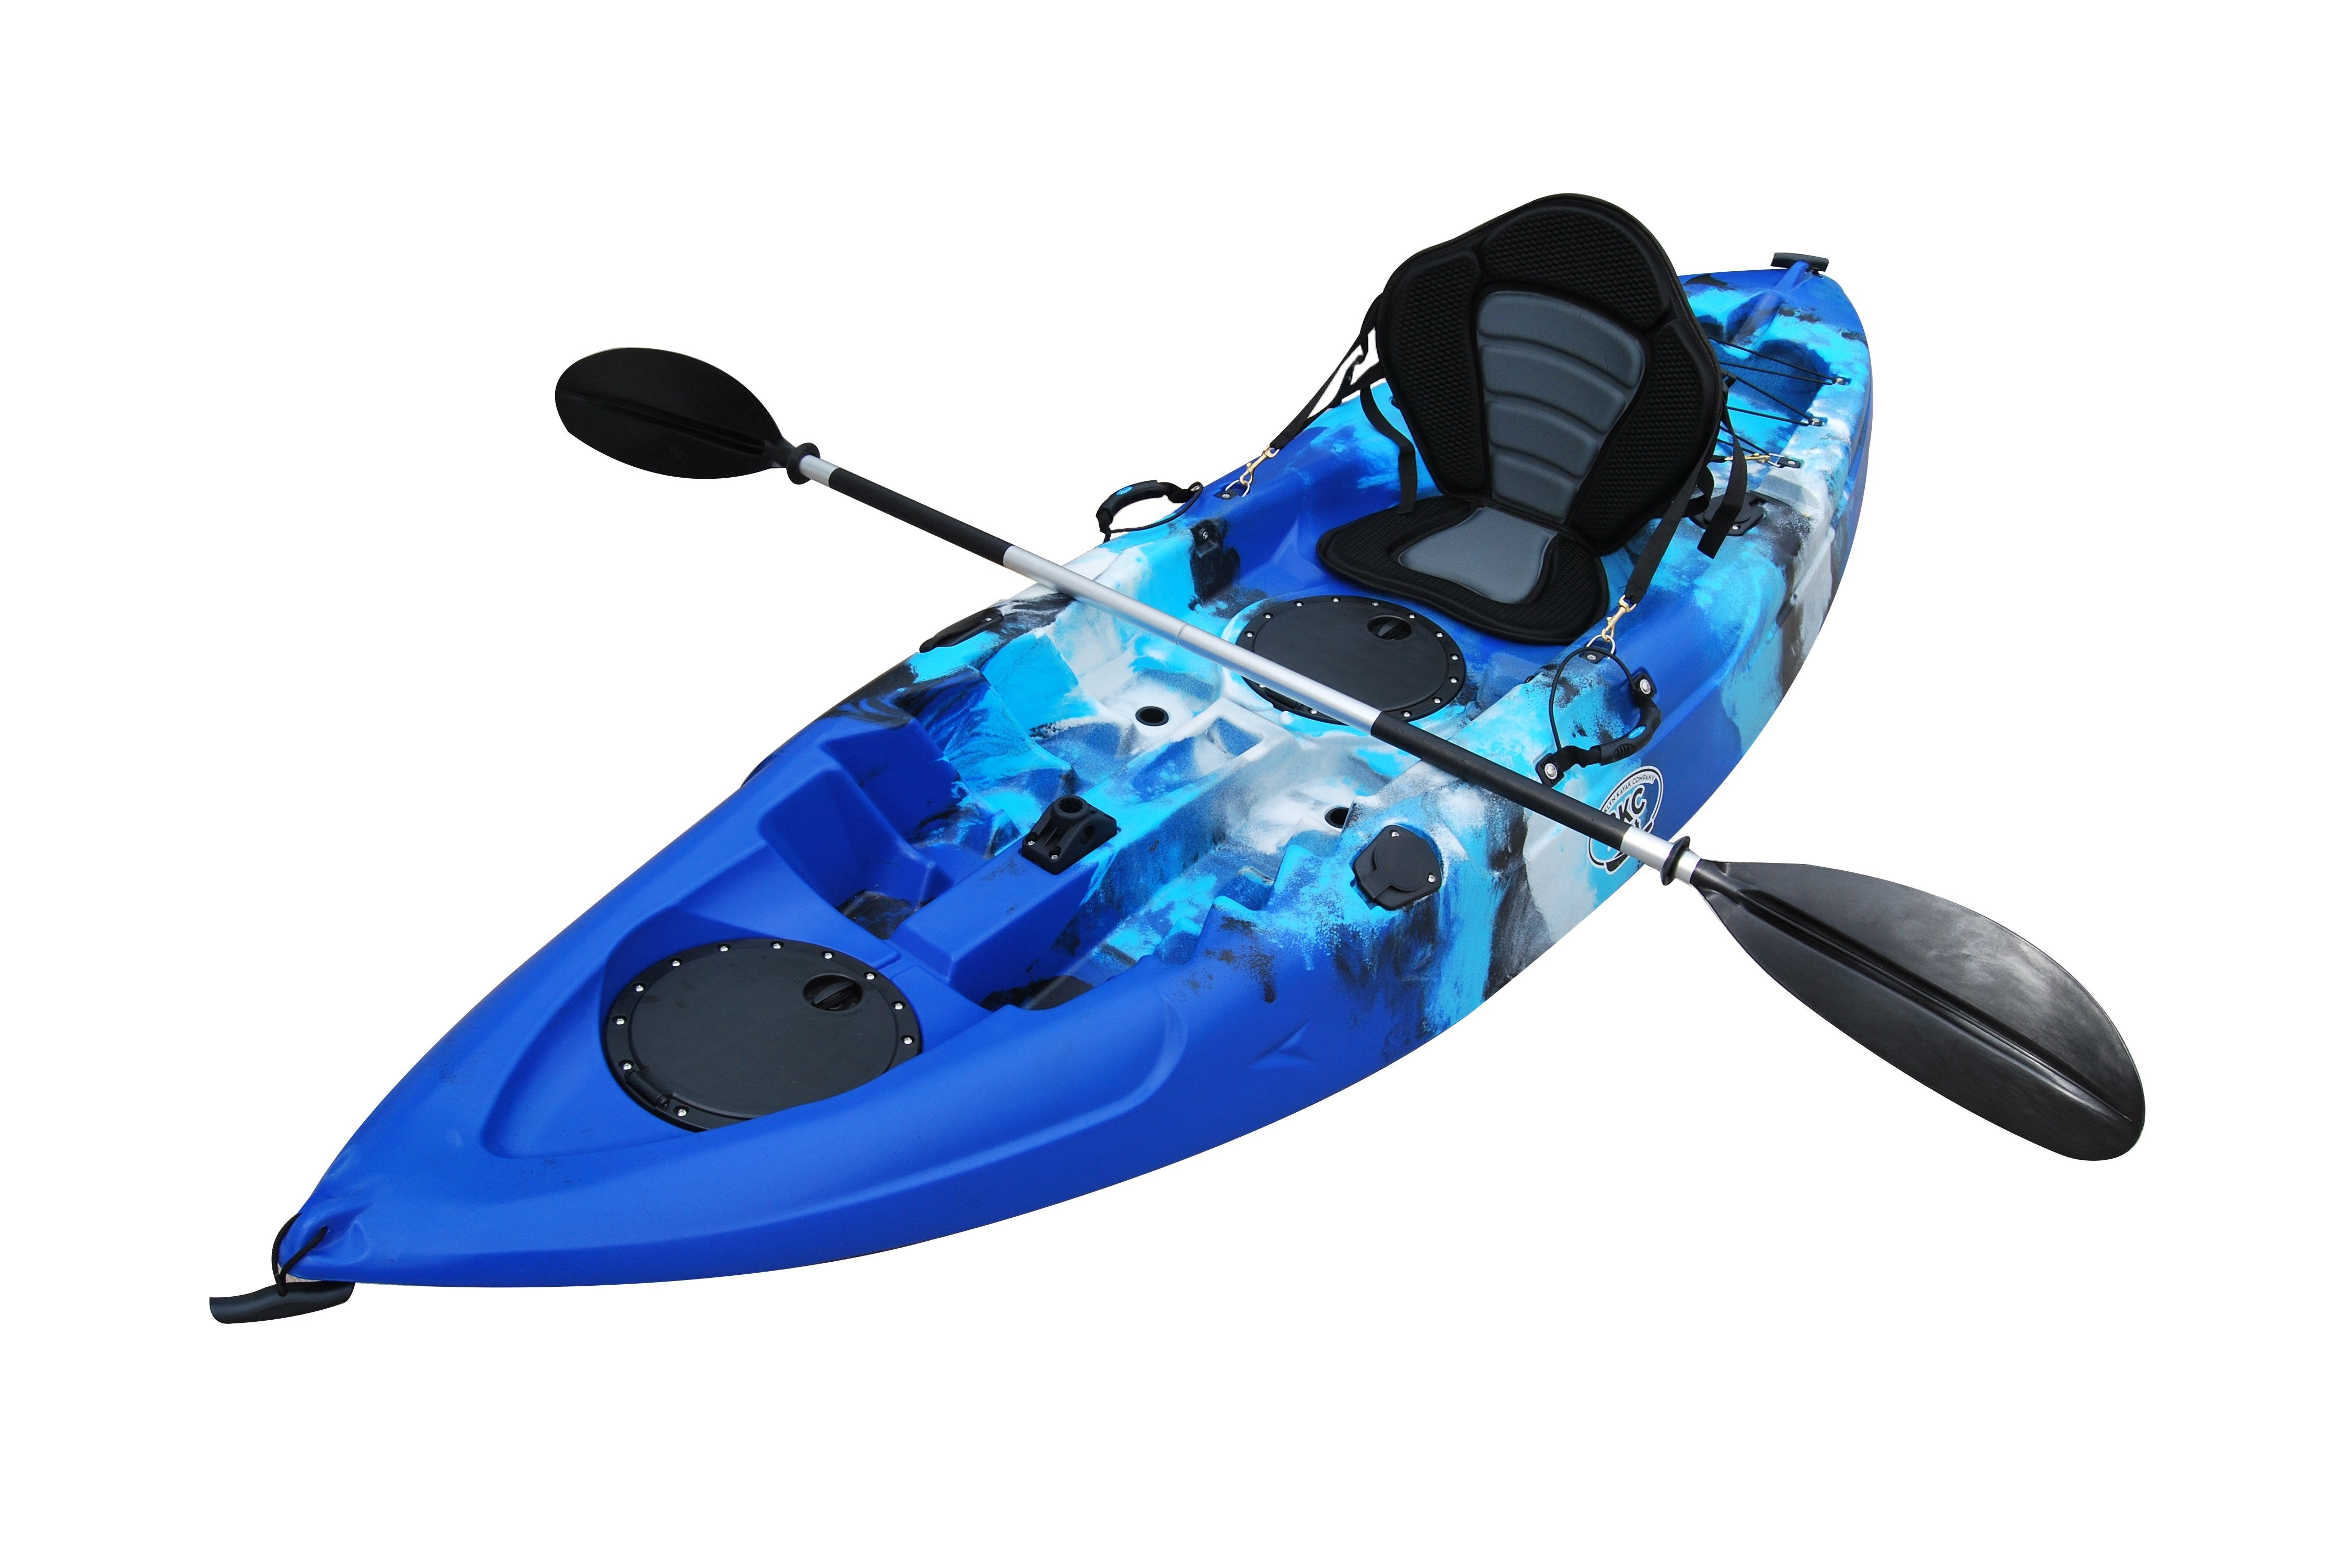 Bkc Fk184 9 Single Sit On Top Fishing Kayak W Seat And Paddle Included Solo Sit On Top Angler Kayak